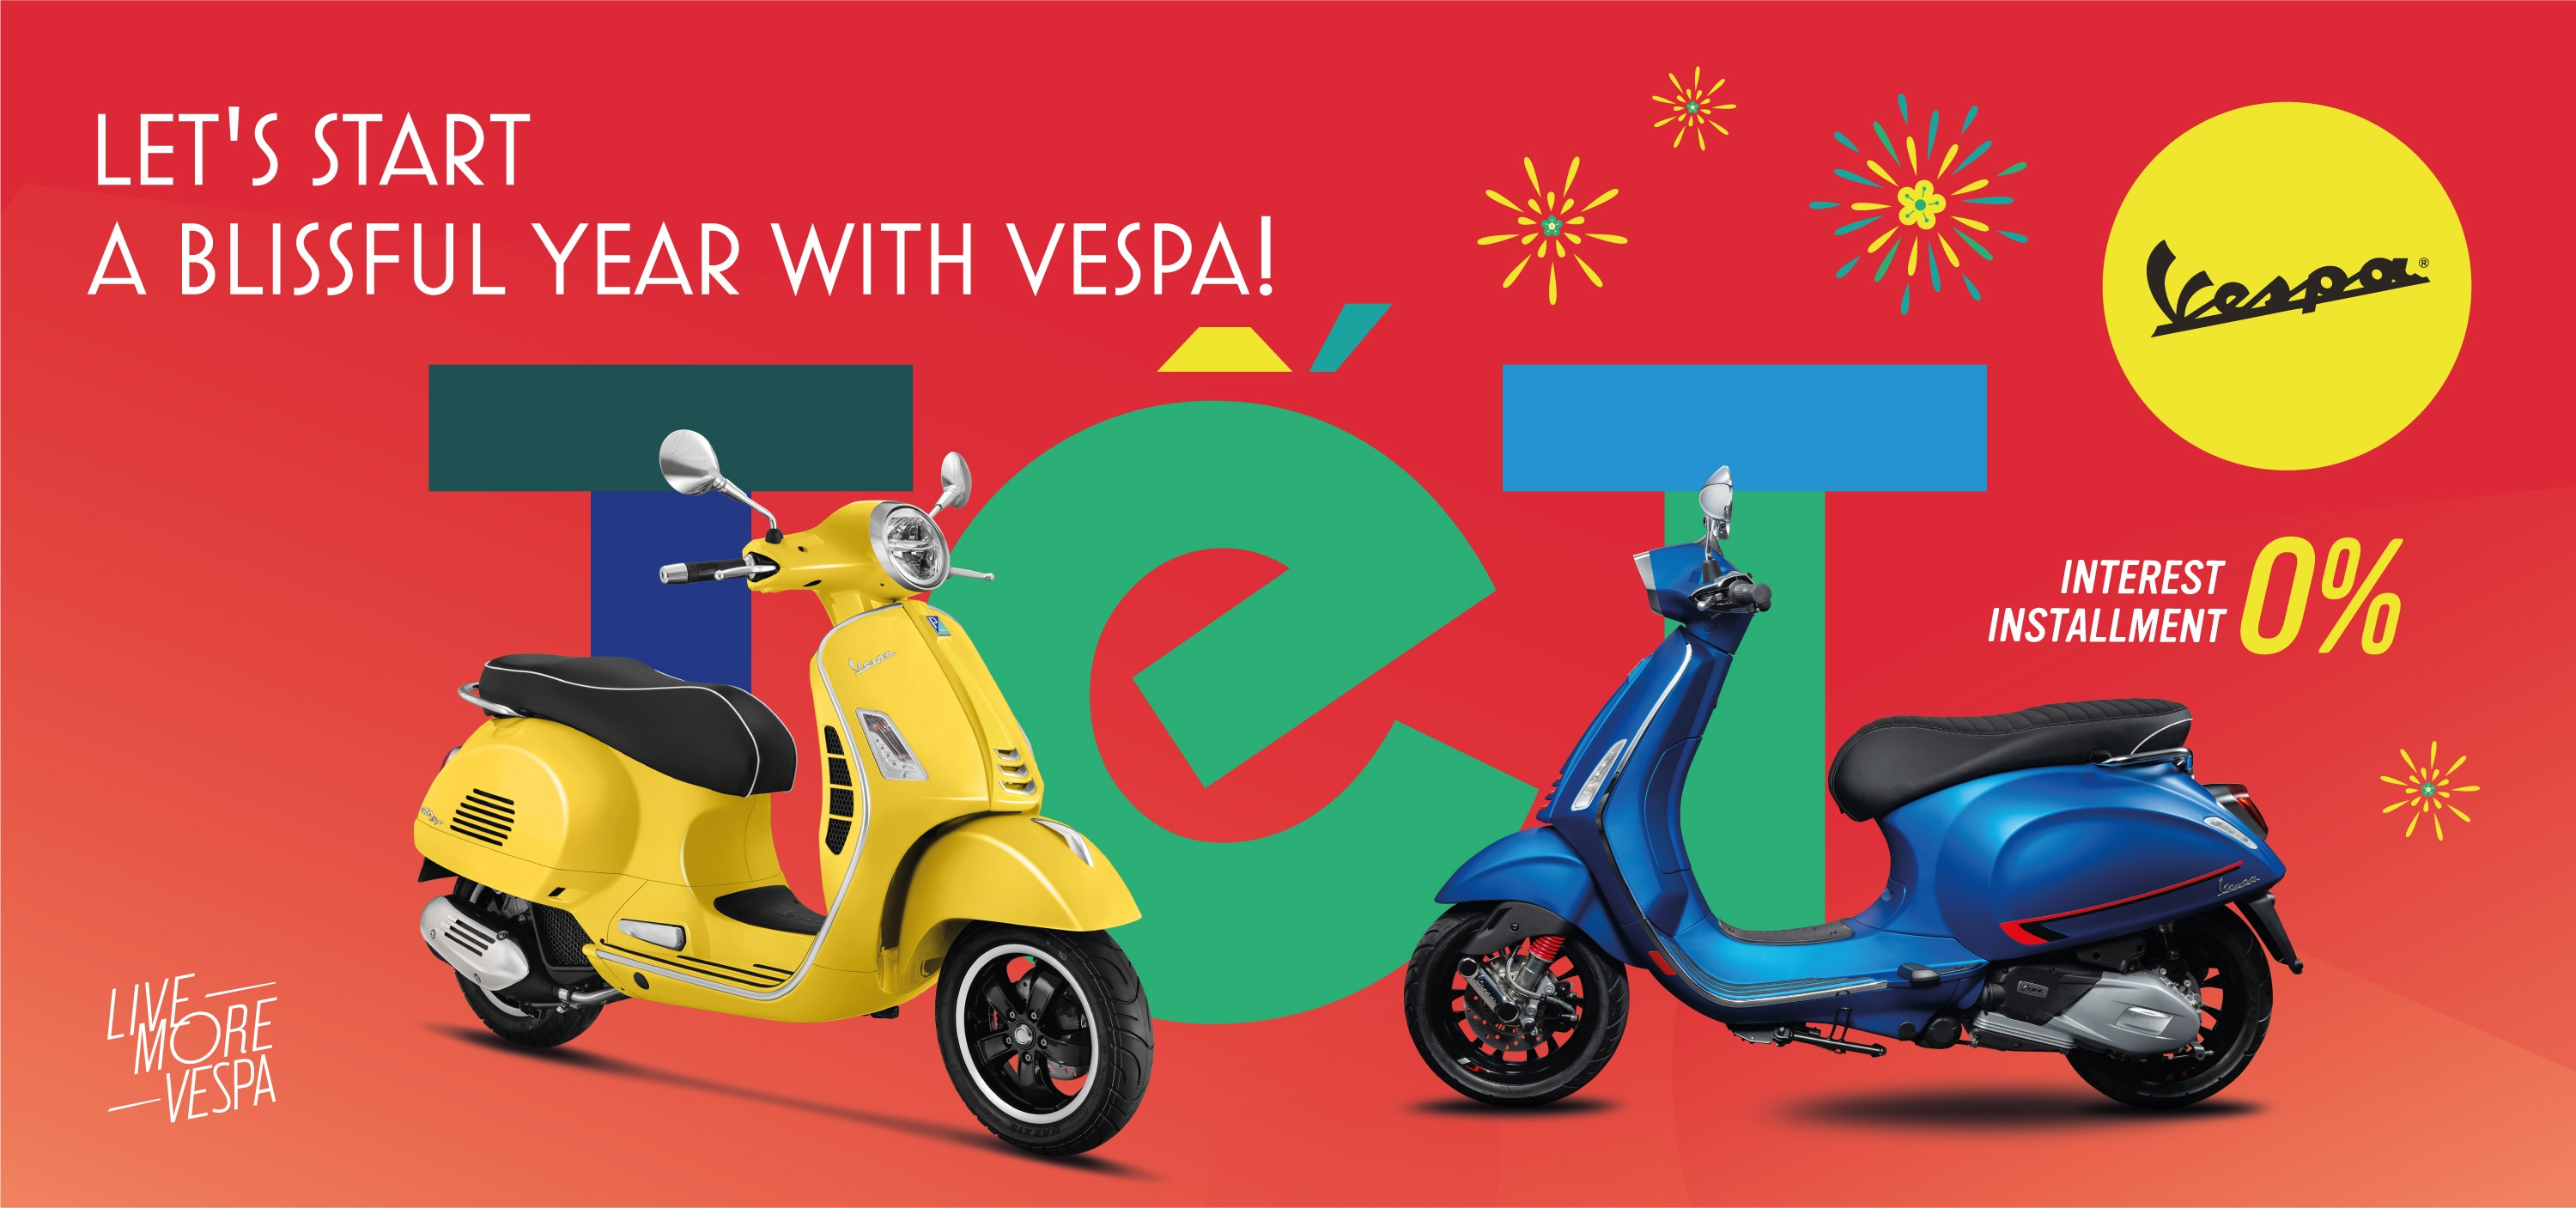 Www Ets Thomas Fr let's start a blissful year with vespa!